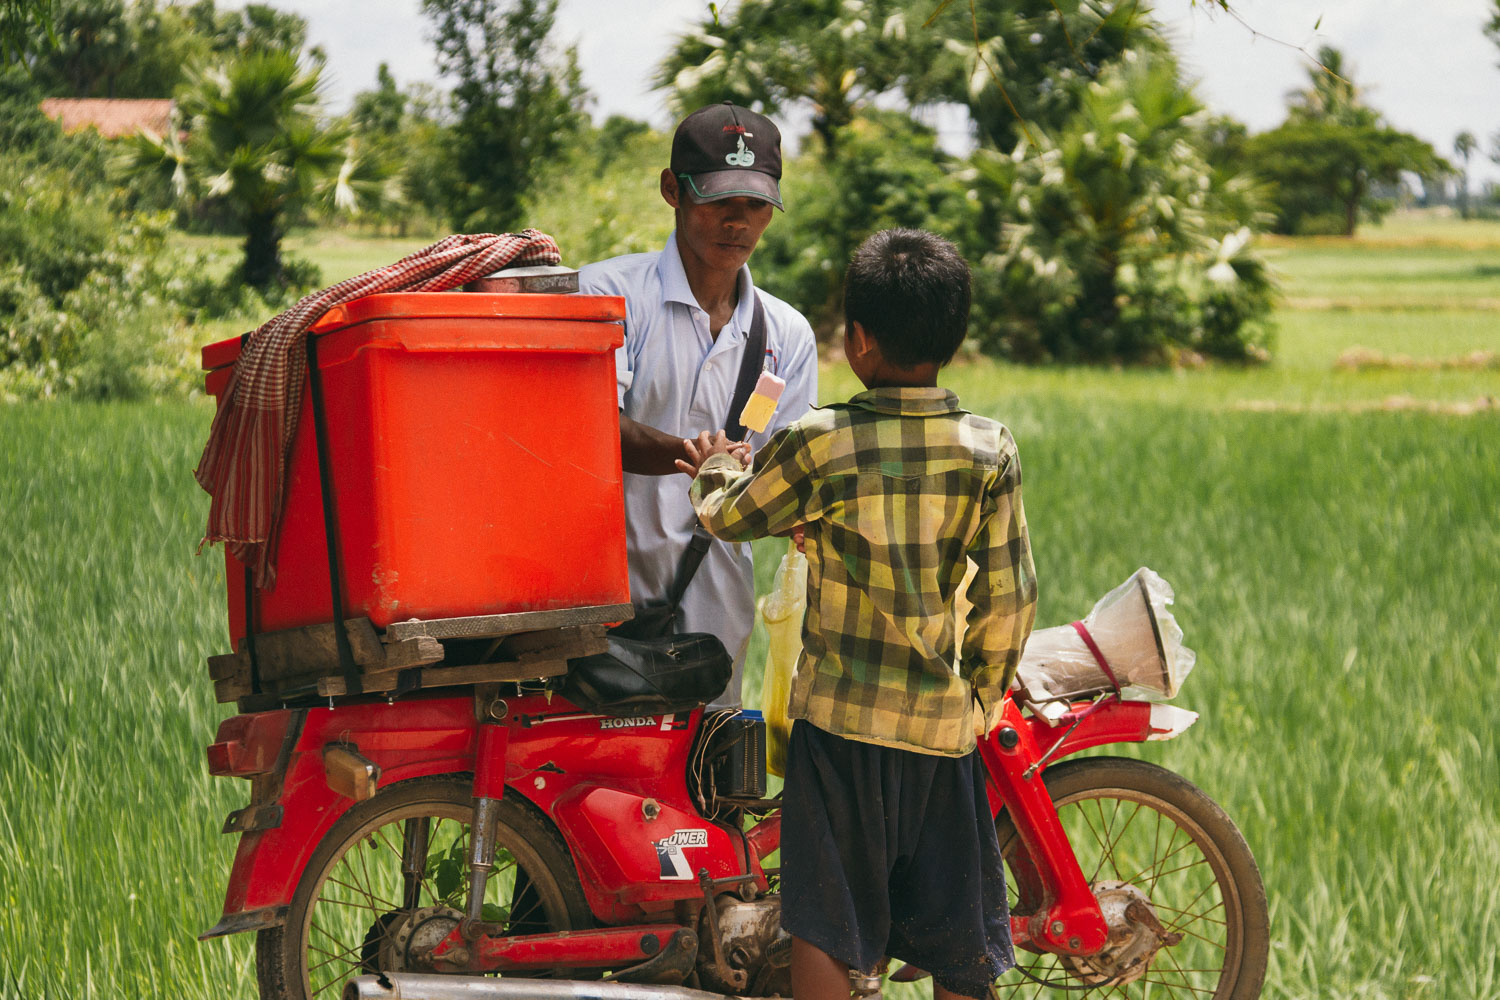 A boy buys ice cream from a motorbike vendor in Kampong Speu Province, Cambodia